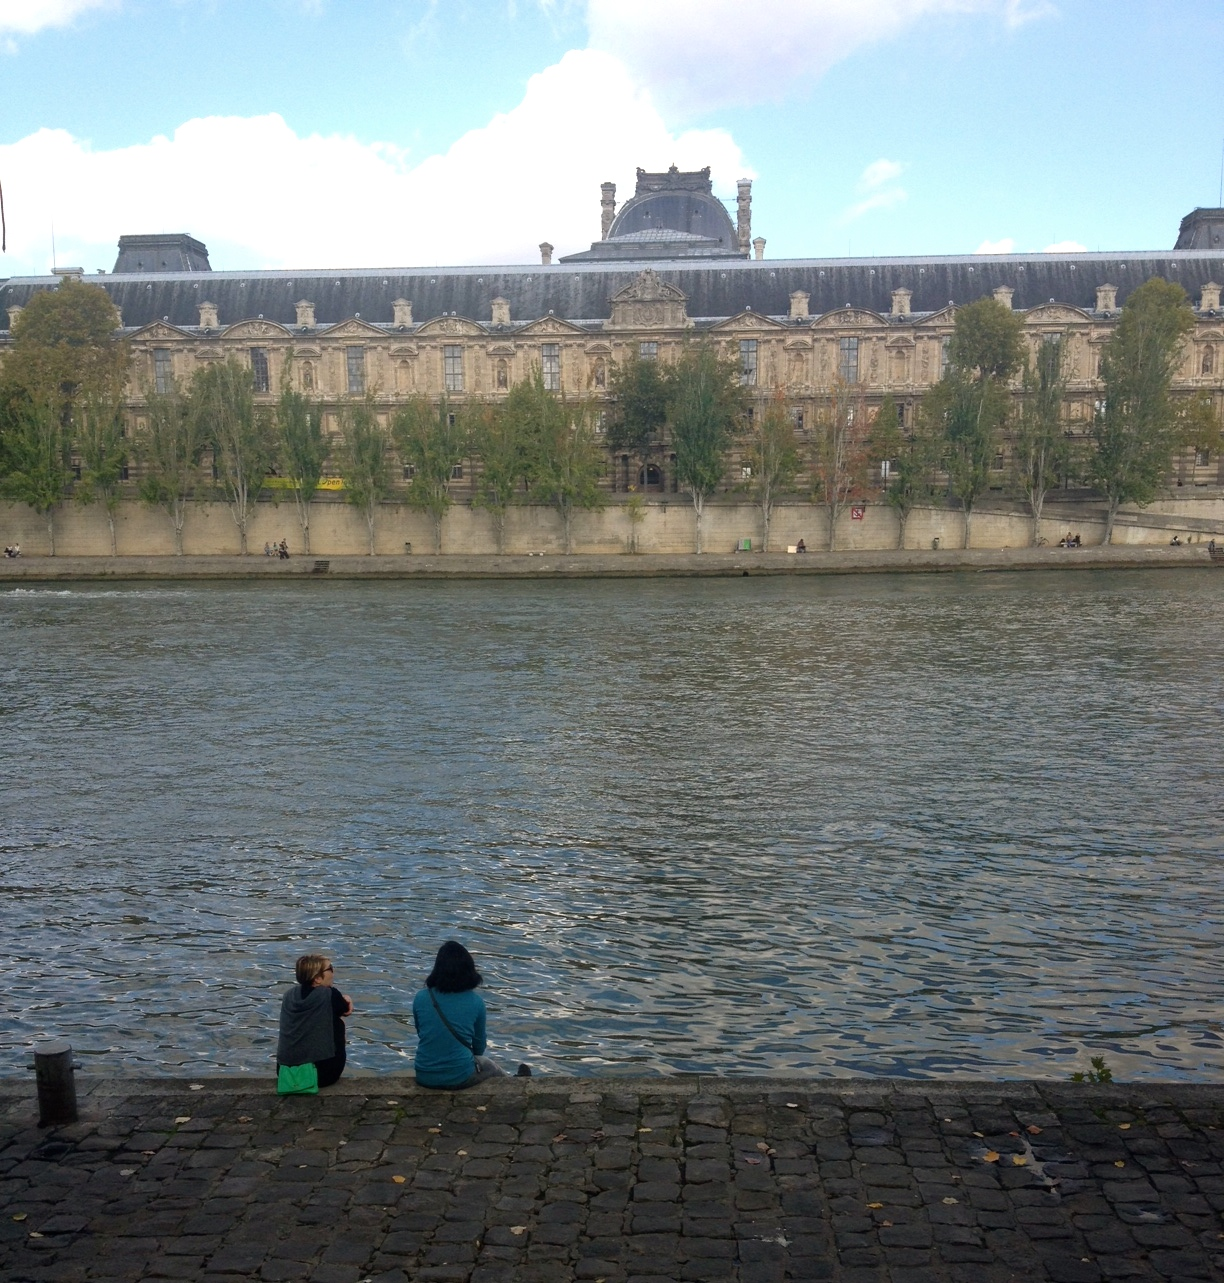 Me and WheetaBex hanging by the Seine.